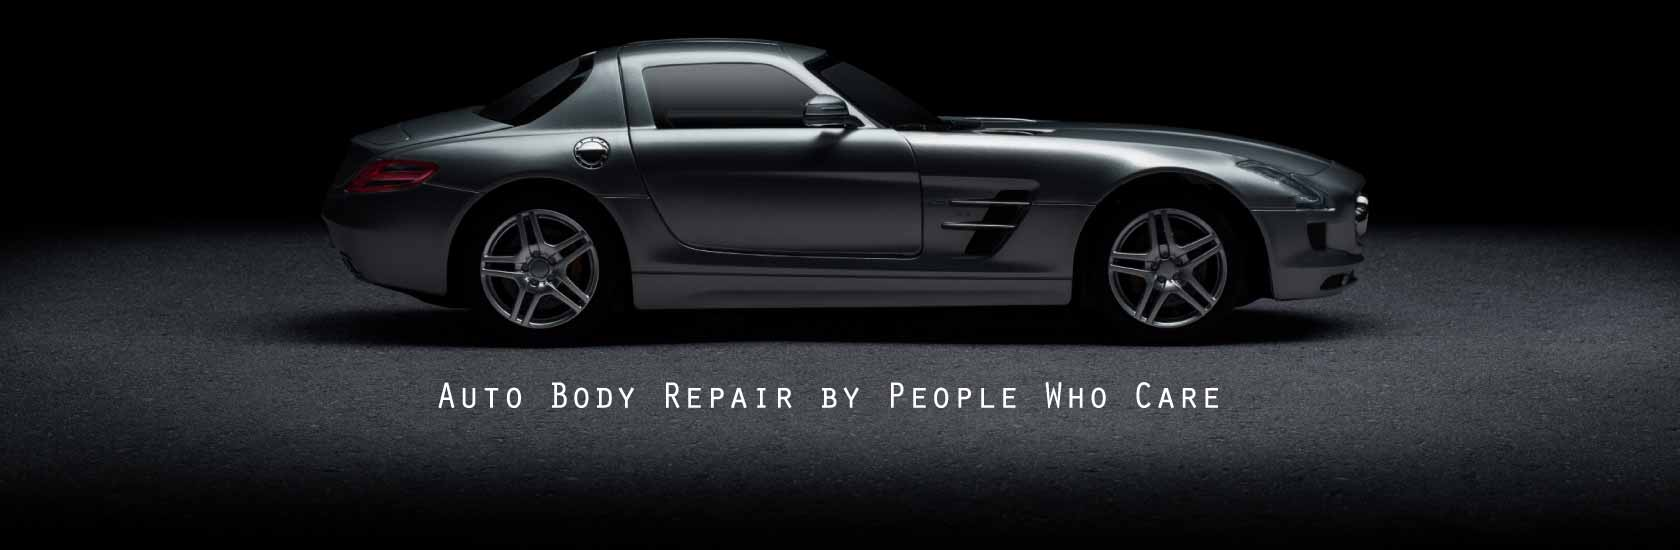 High end car - Auto Body Repair by People Who Care